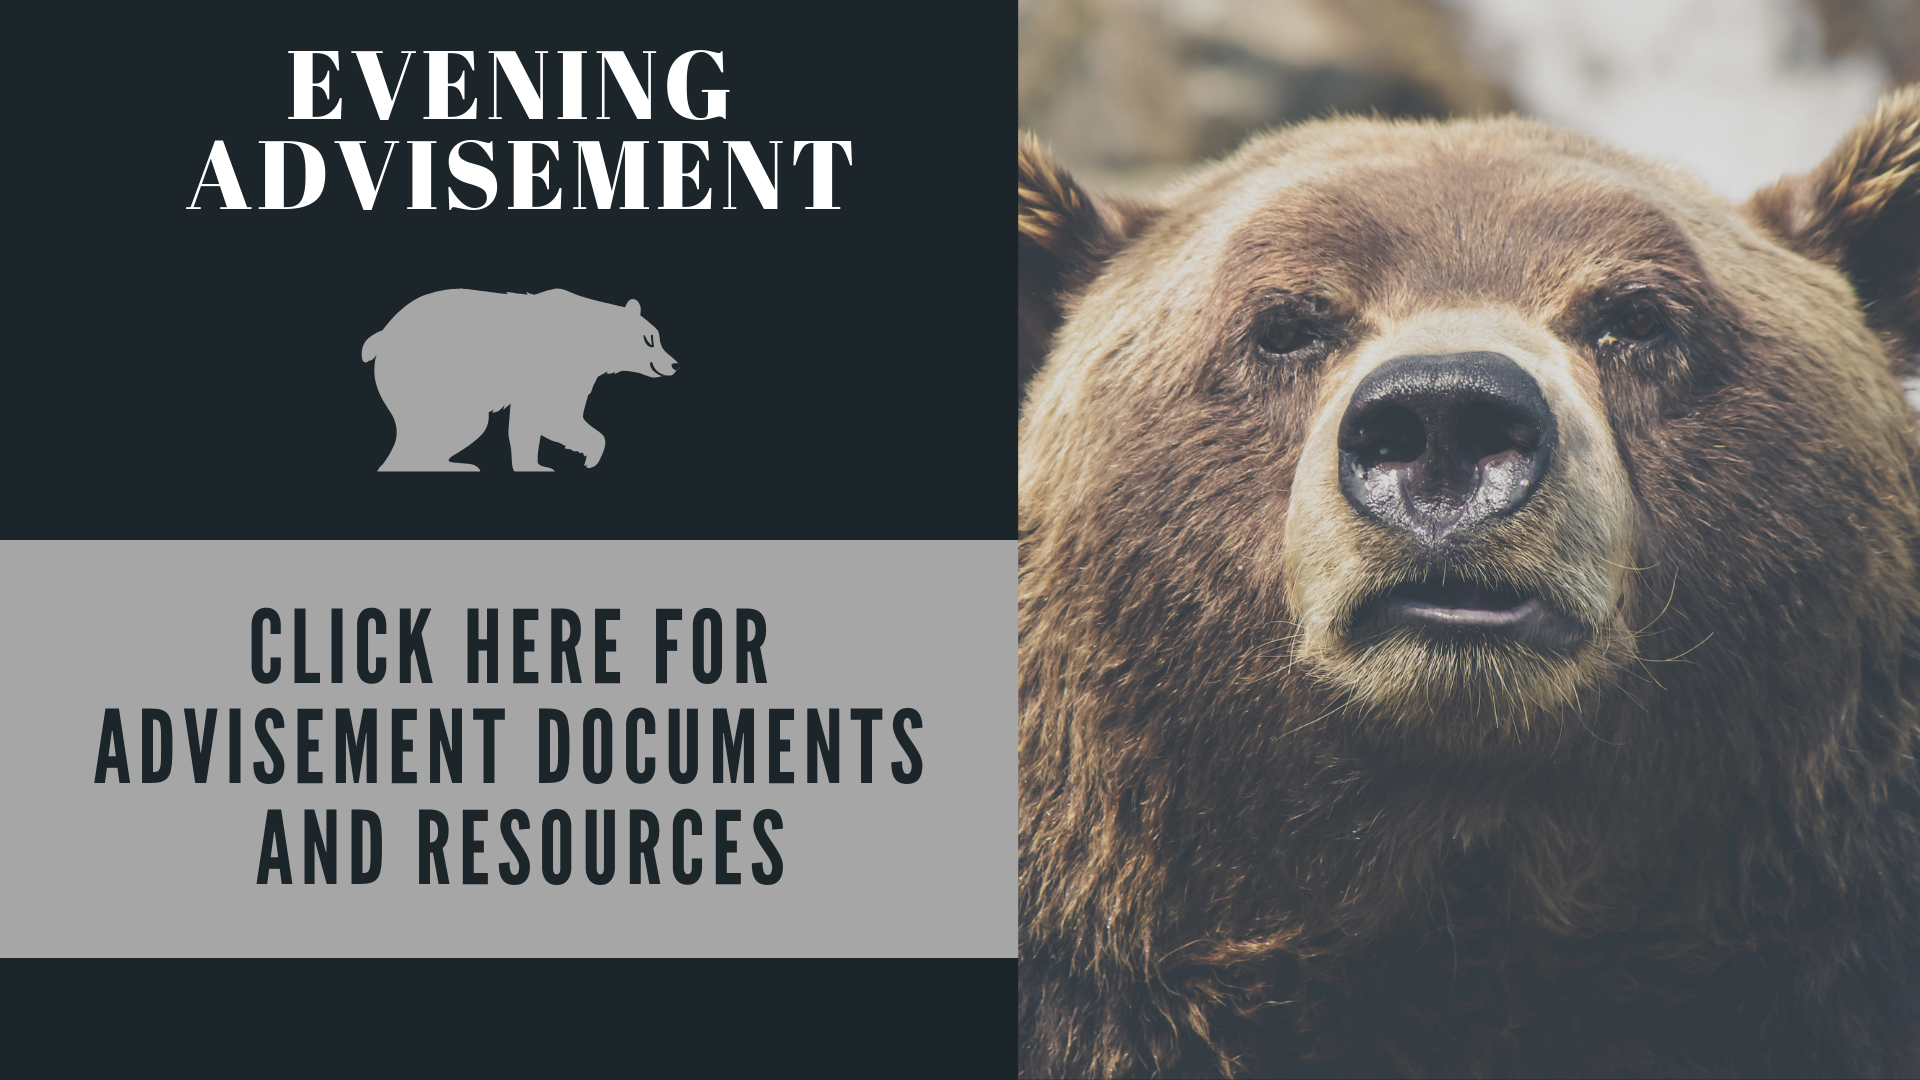 Evening Advisement Documents and Resources Promo and Link